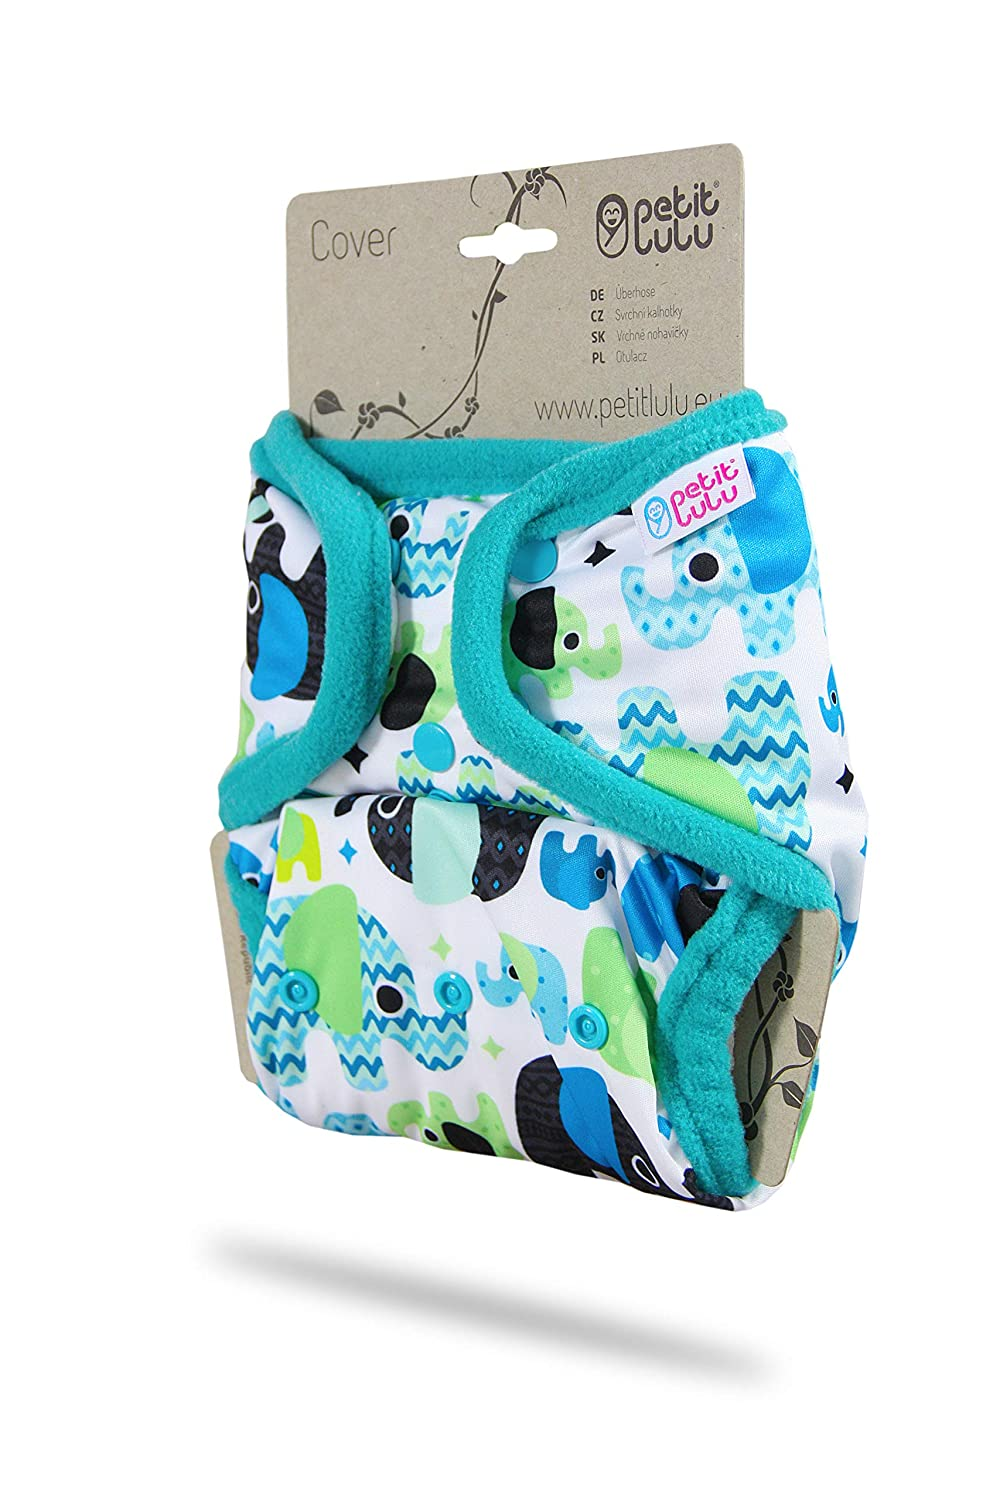 White Made in Europe Cloth Nappies Snaps Petit Lulu Cloth Nappy Cover One Size Washable Diaper Wrap